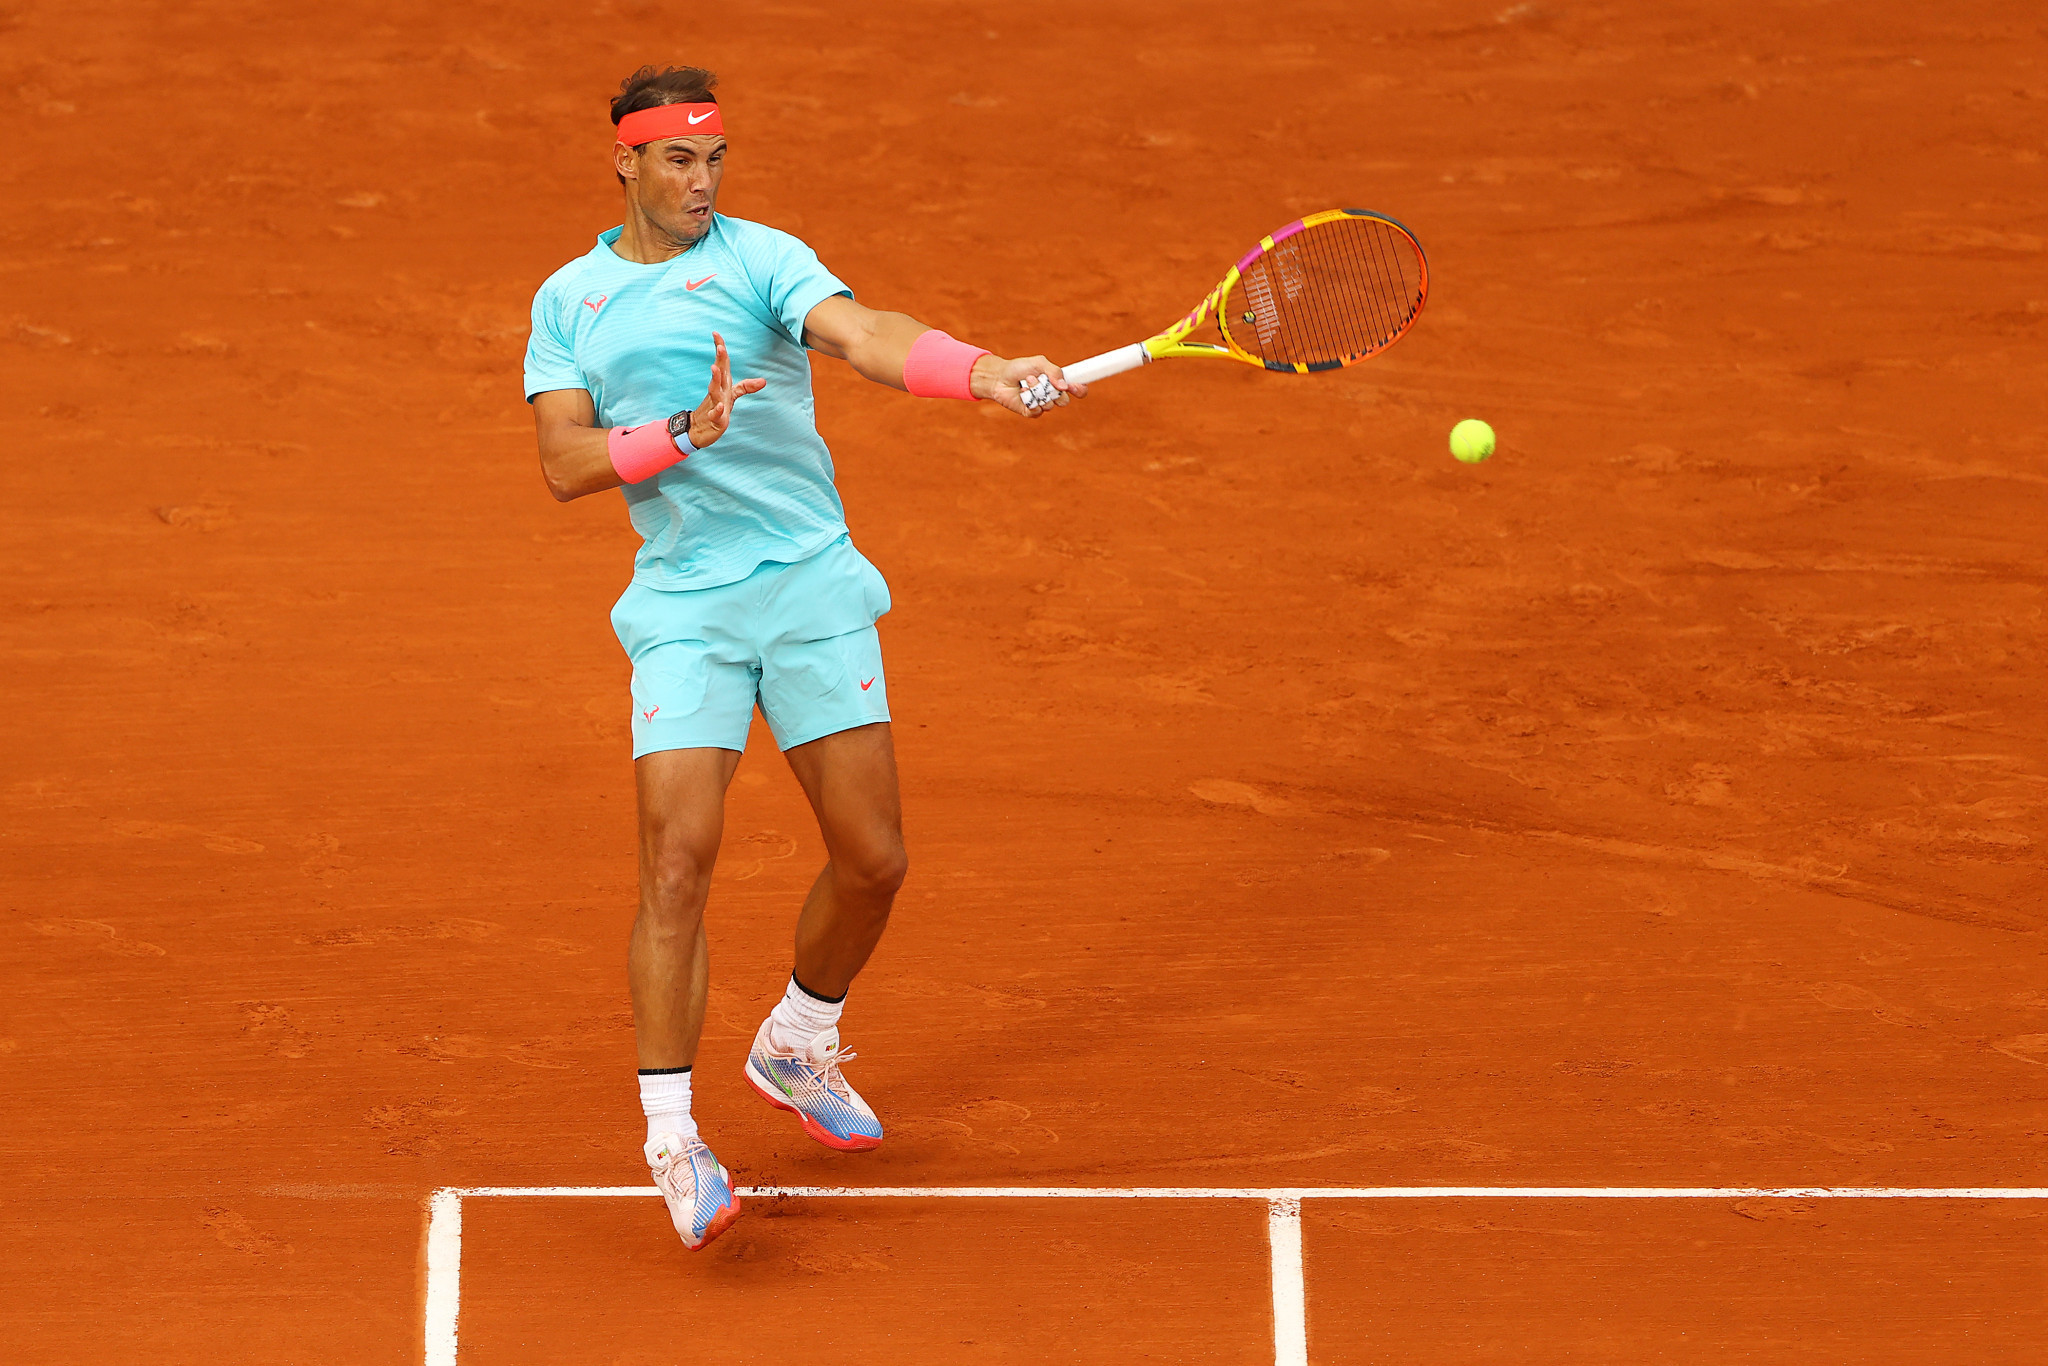 Spain's Rafael Nadal progressed from round one in a bid to win a fourth straight men's singles French Open title ©Getty Images